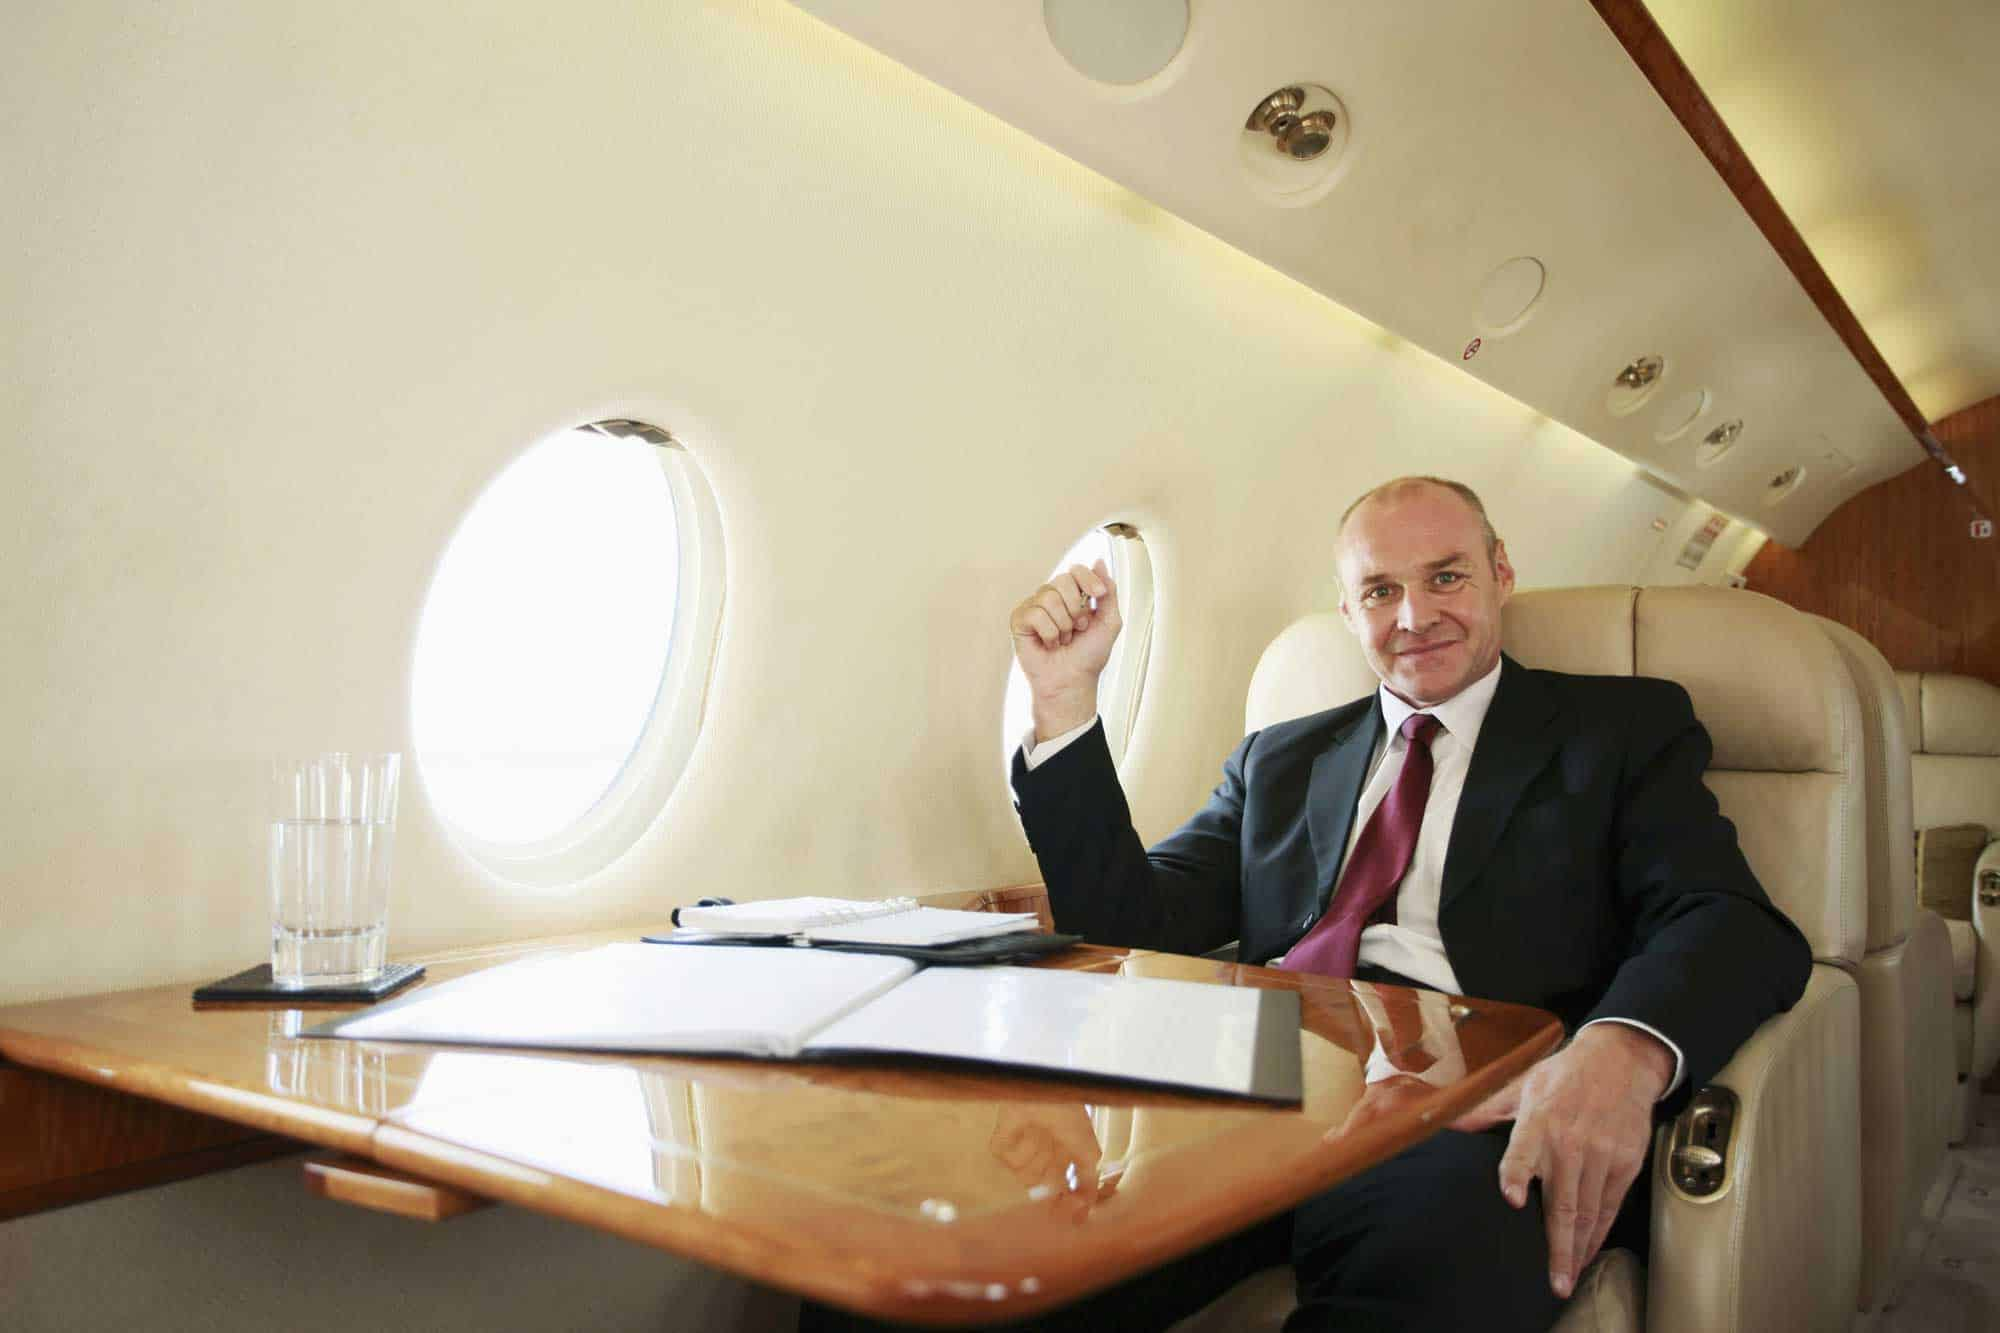 Executive on Jet Working